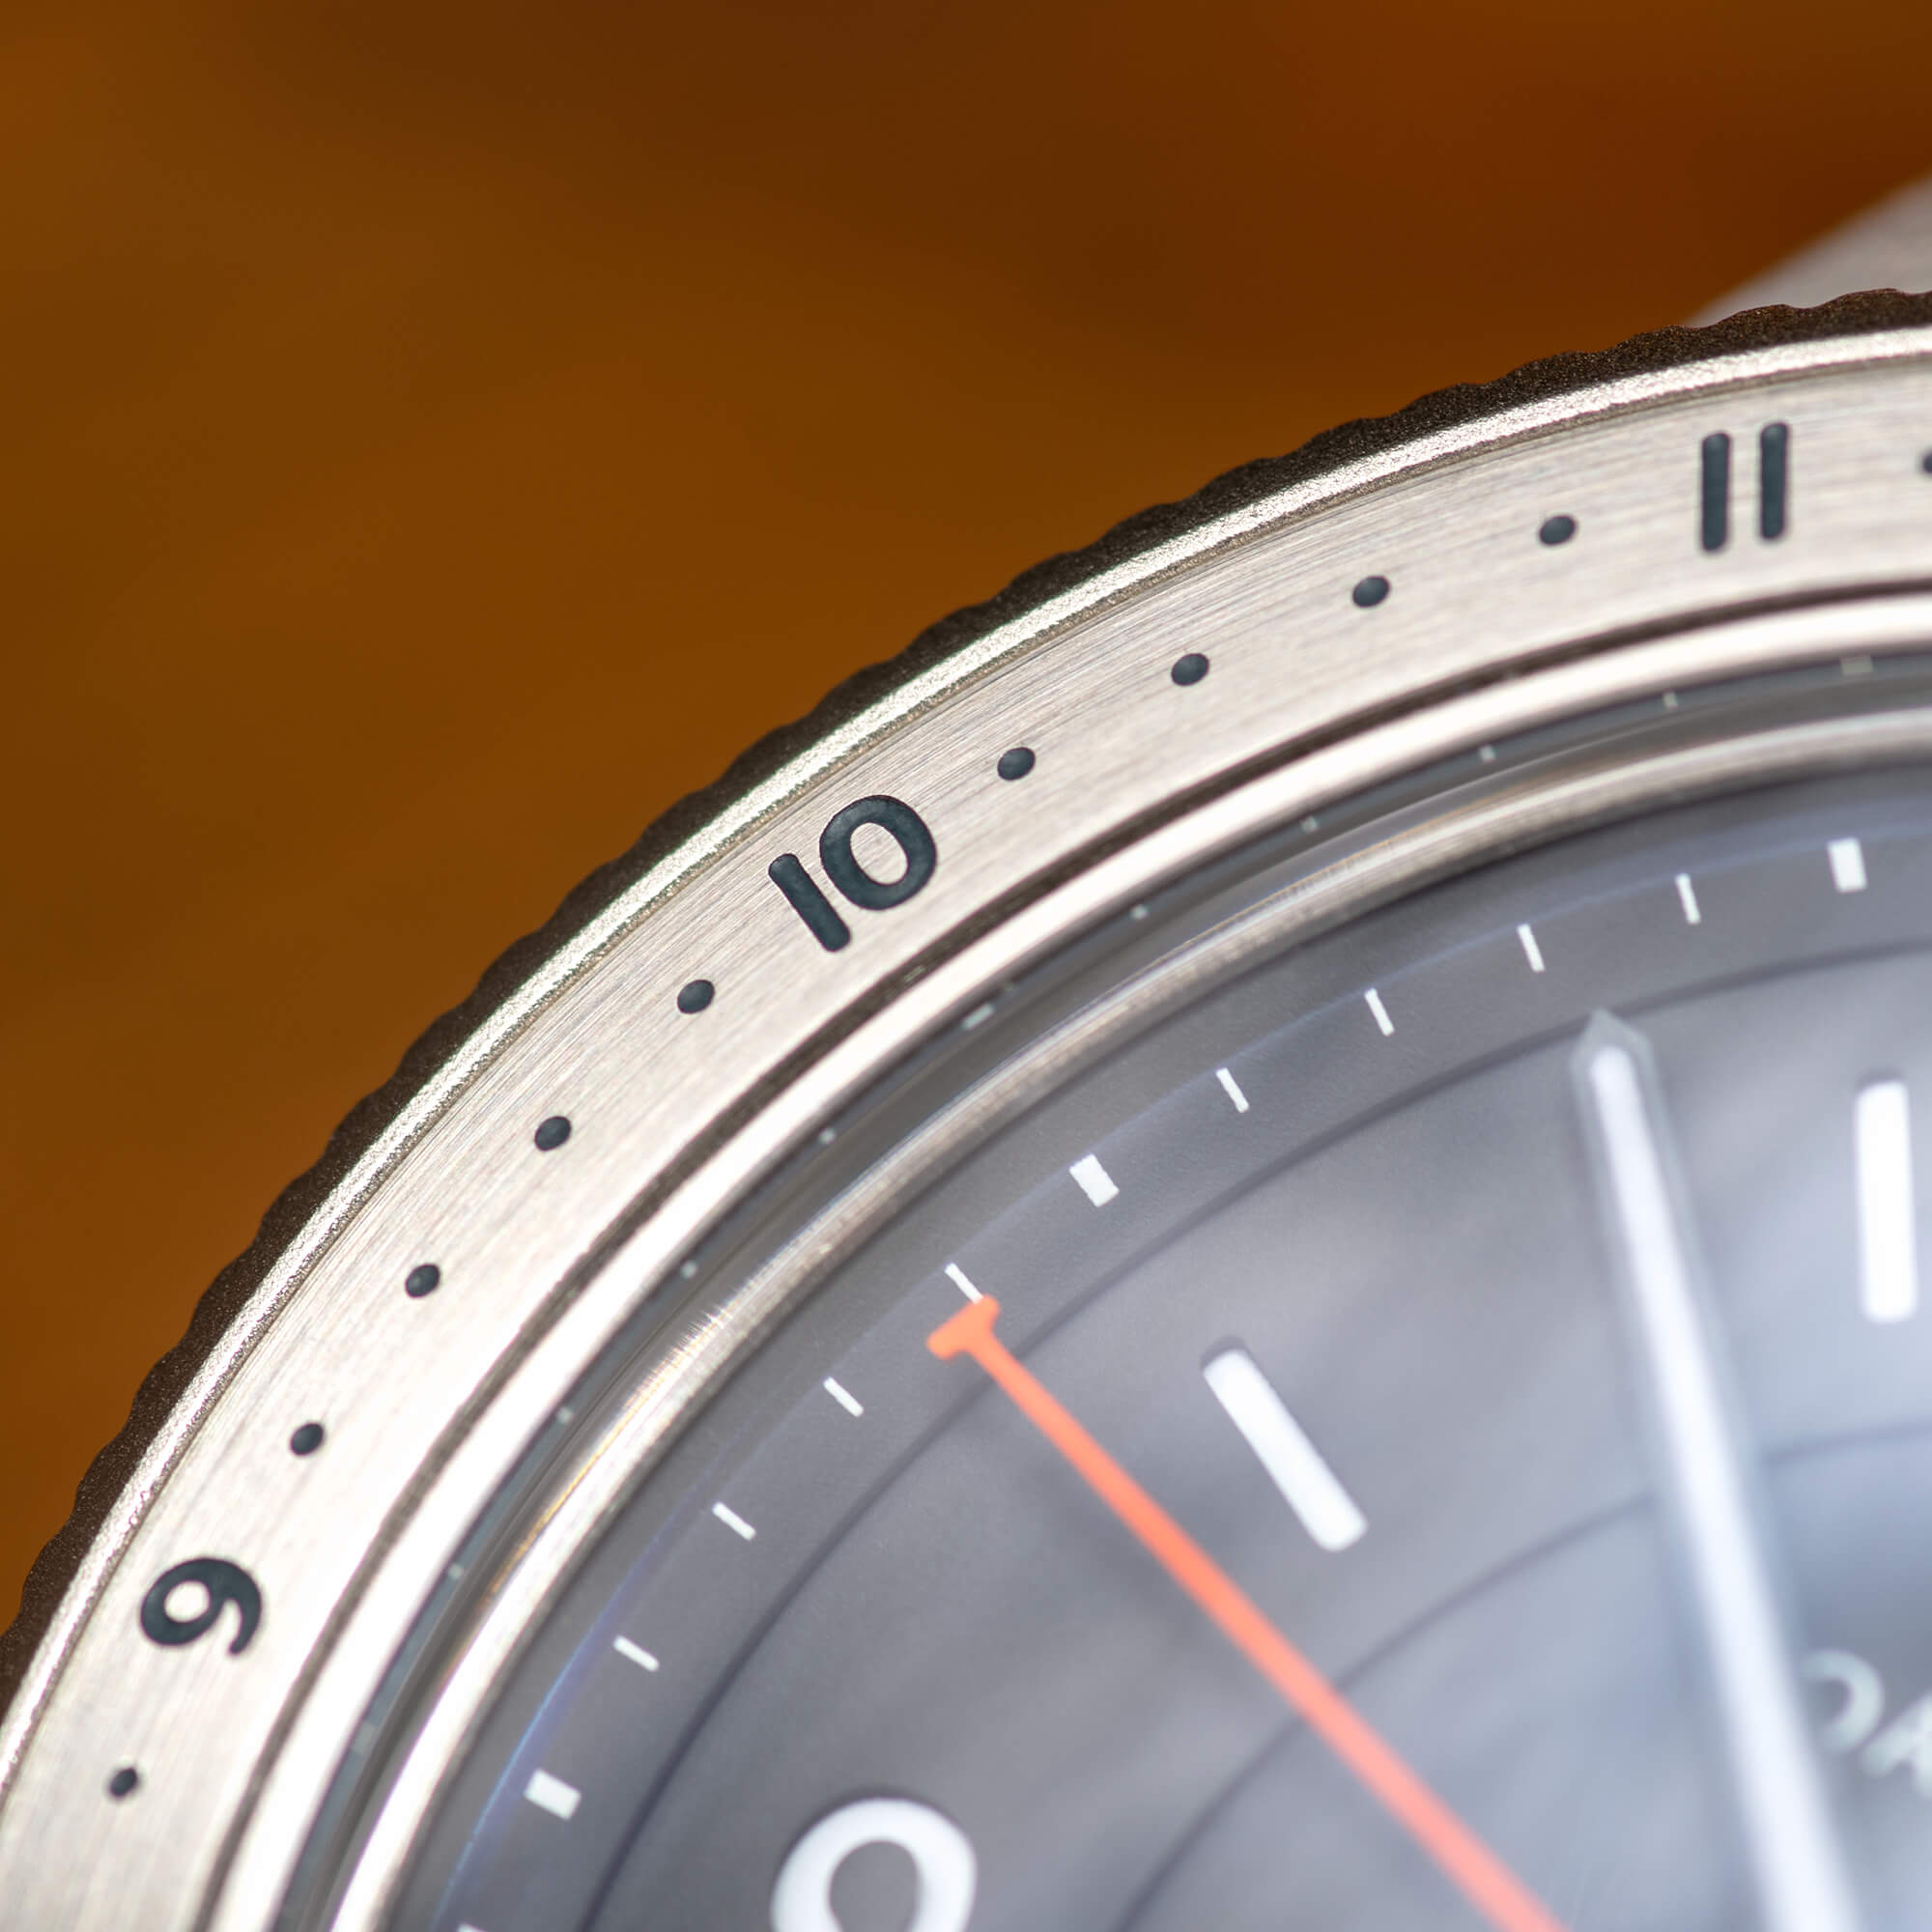 12-Hour Bezel - Easily keep track of a second time zone, elapsed time, or count down minutes with a quick twist of the bi-directional 12-hour external bezel. One of the most useful bezel designs out there and the perfect tool for everyday life.